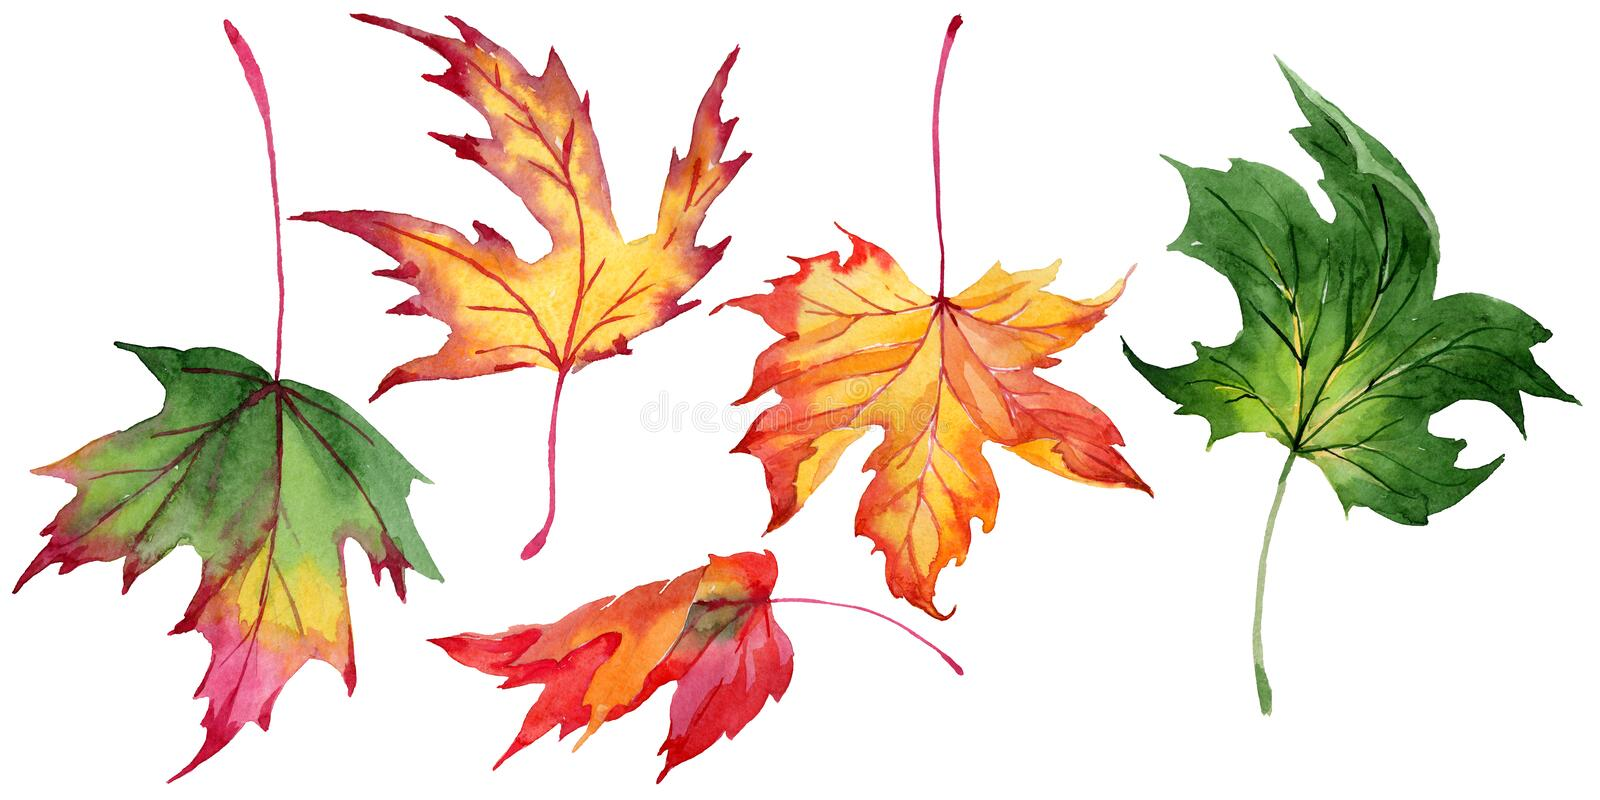 Maple leaves in a watercolor style isolated. royalty free illustration